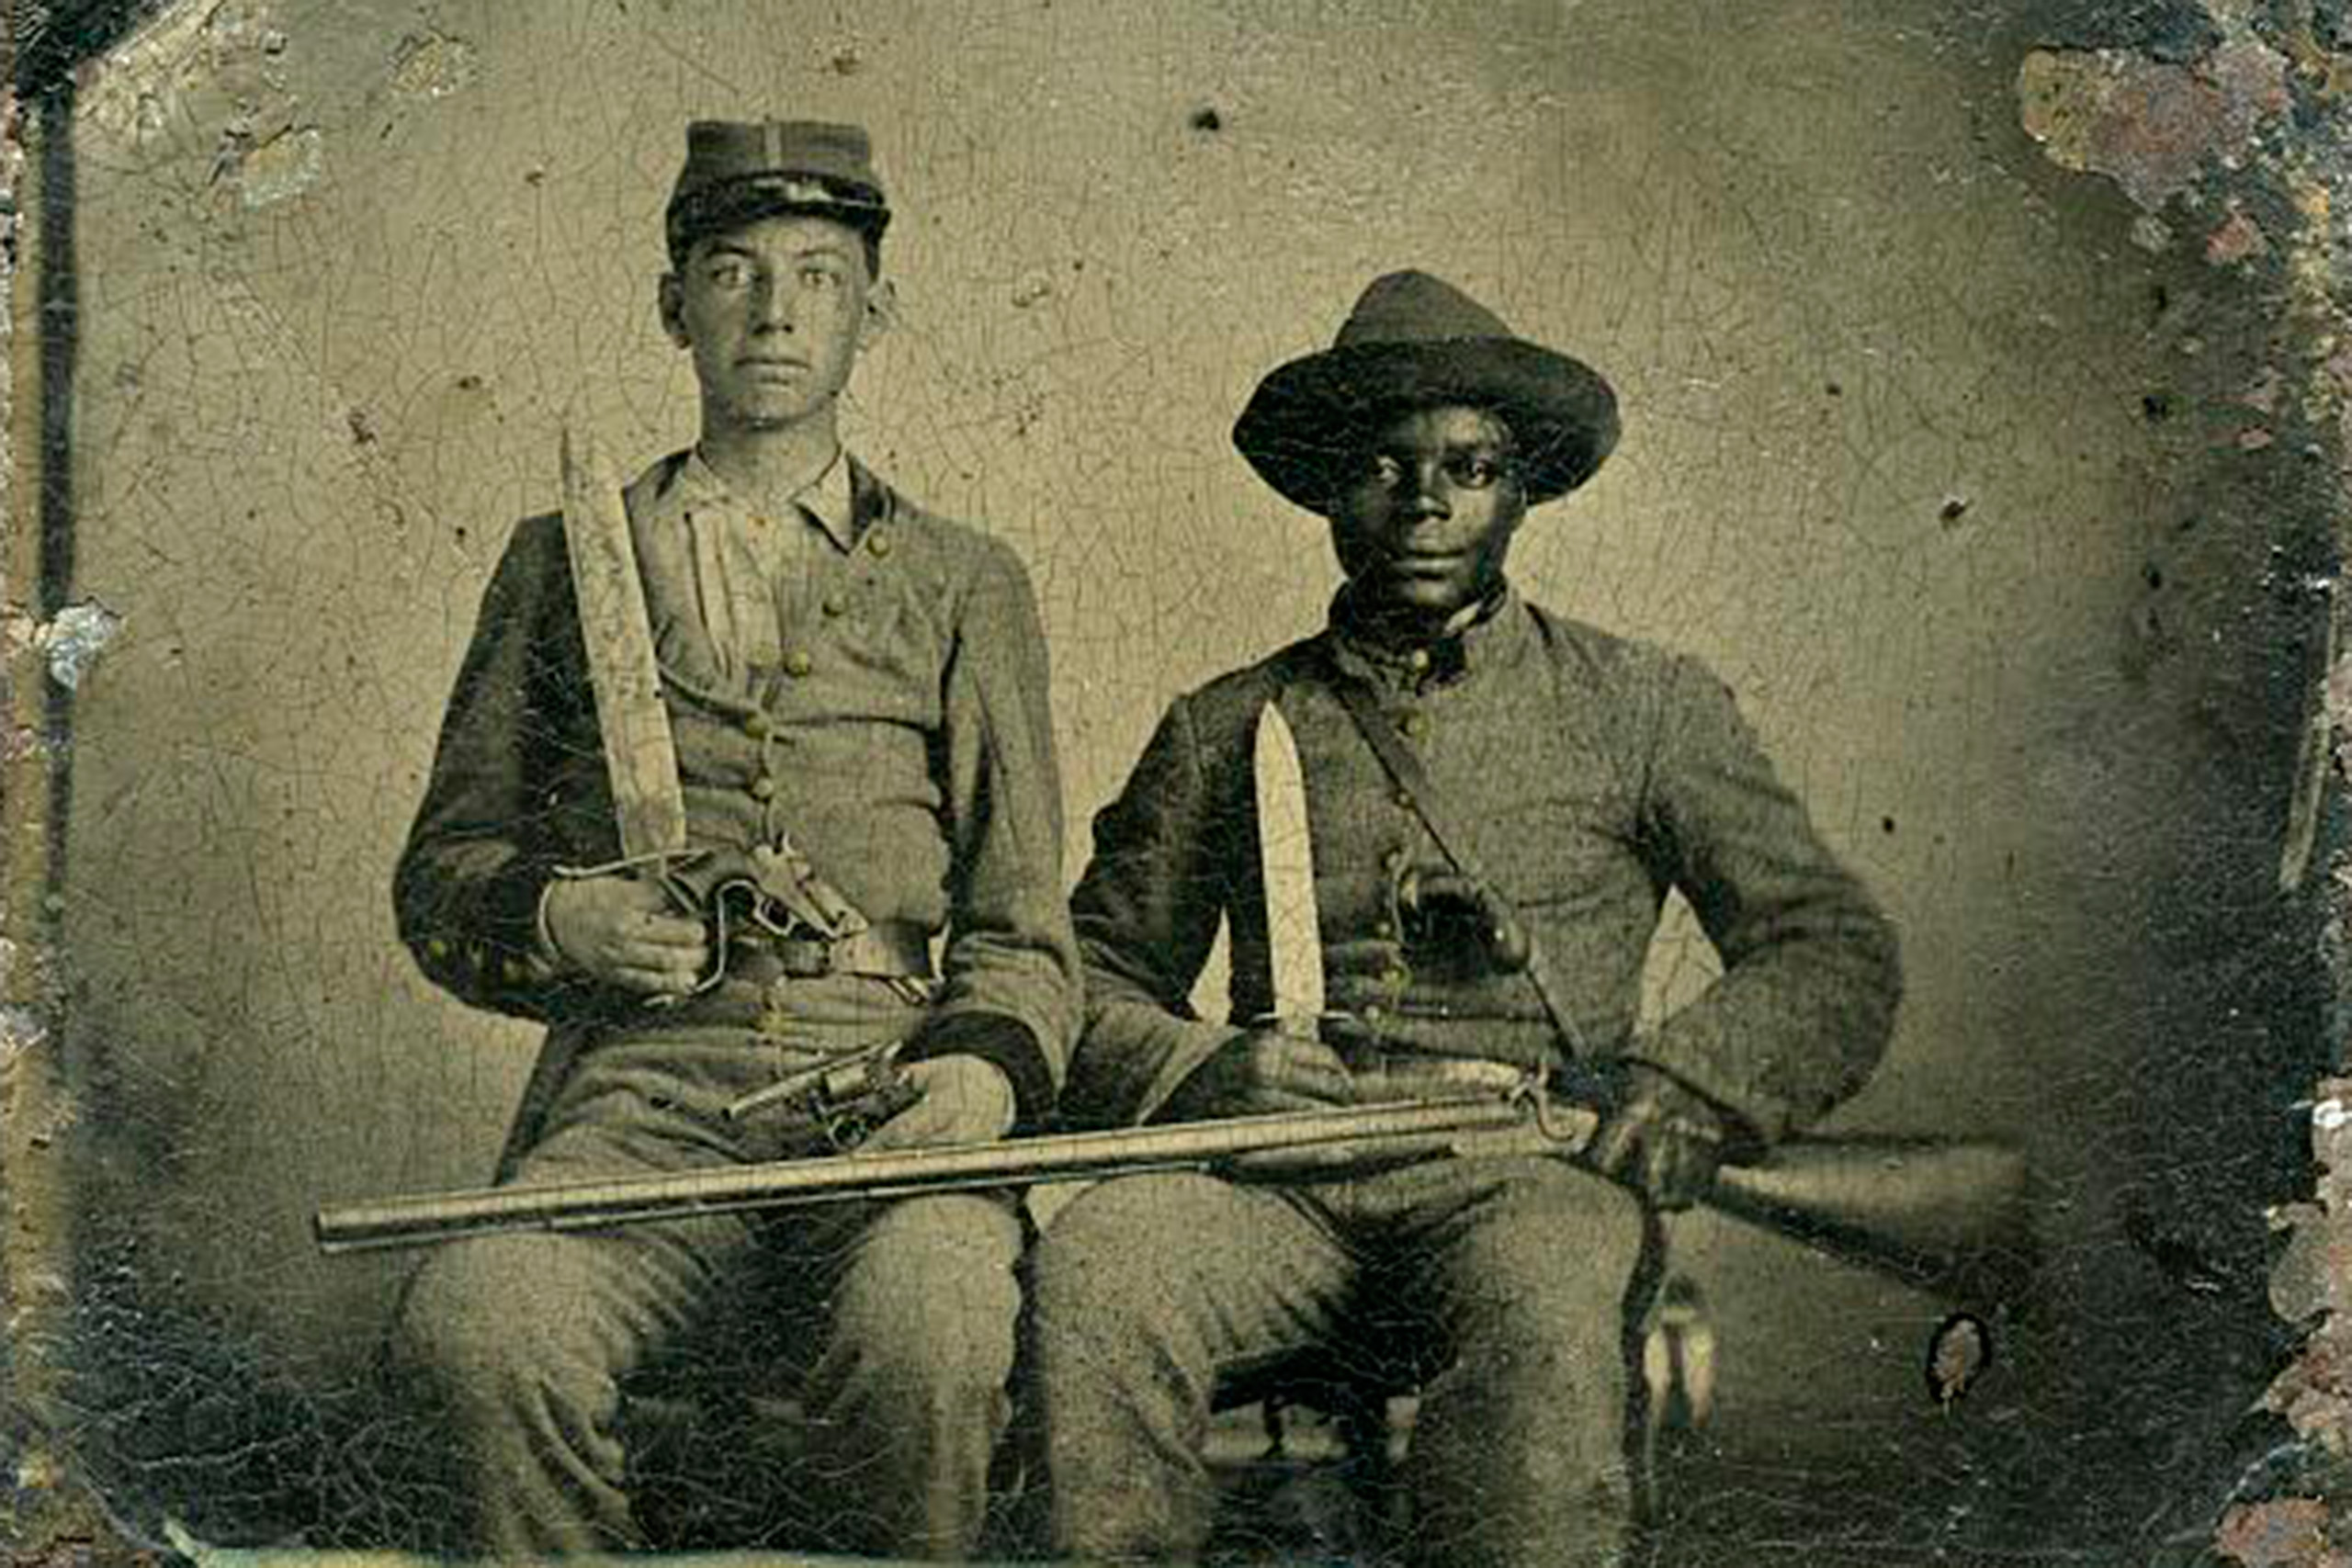 afro american army black confederate essay gray in in southerner Essays on african-americans in confederate armies black southerners in gray: essays on african-americans in confederate armies army -- afro-american troops.